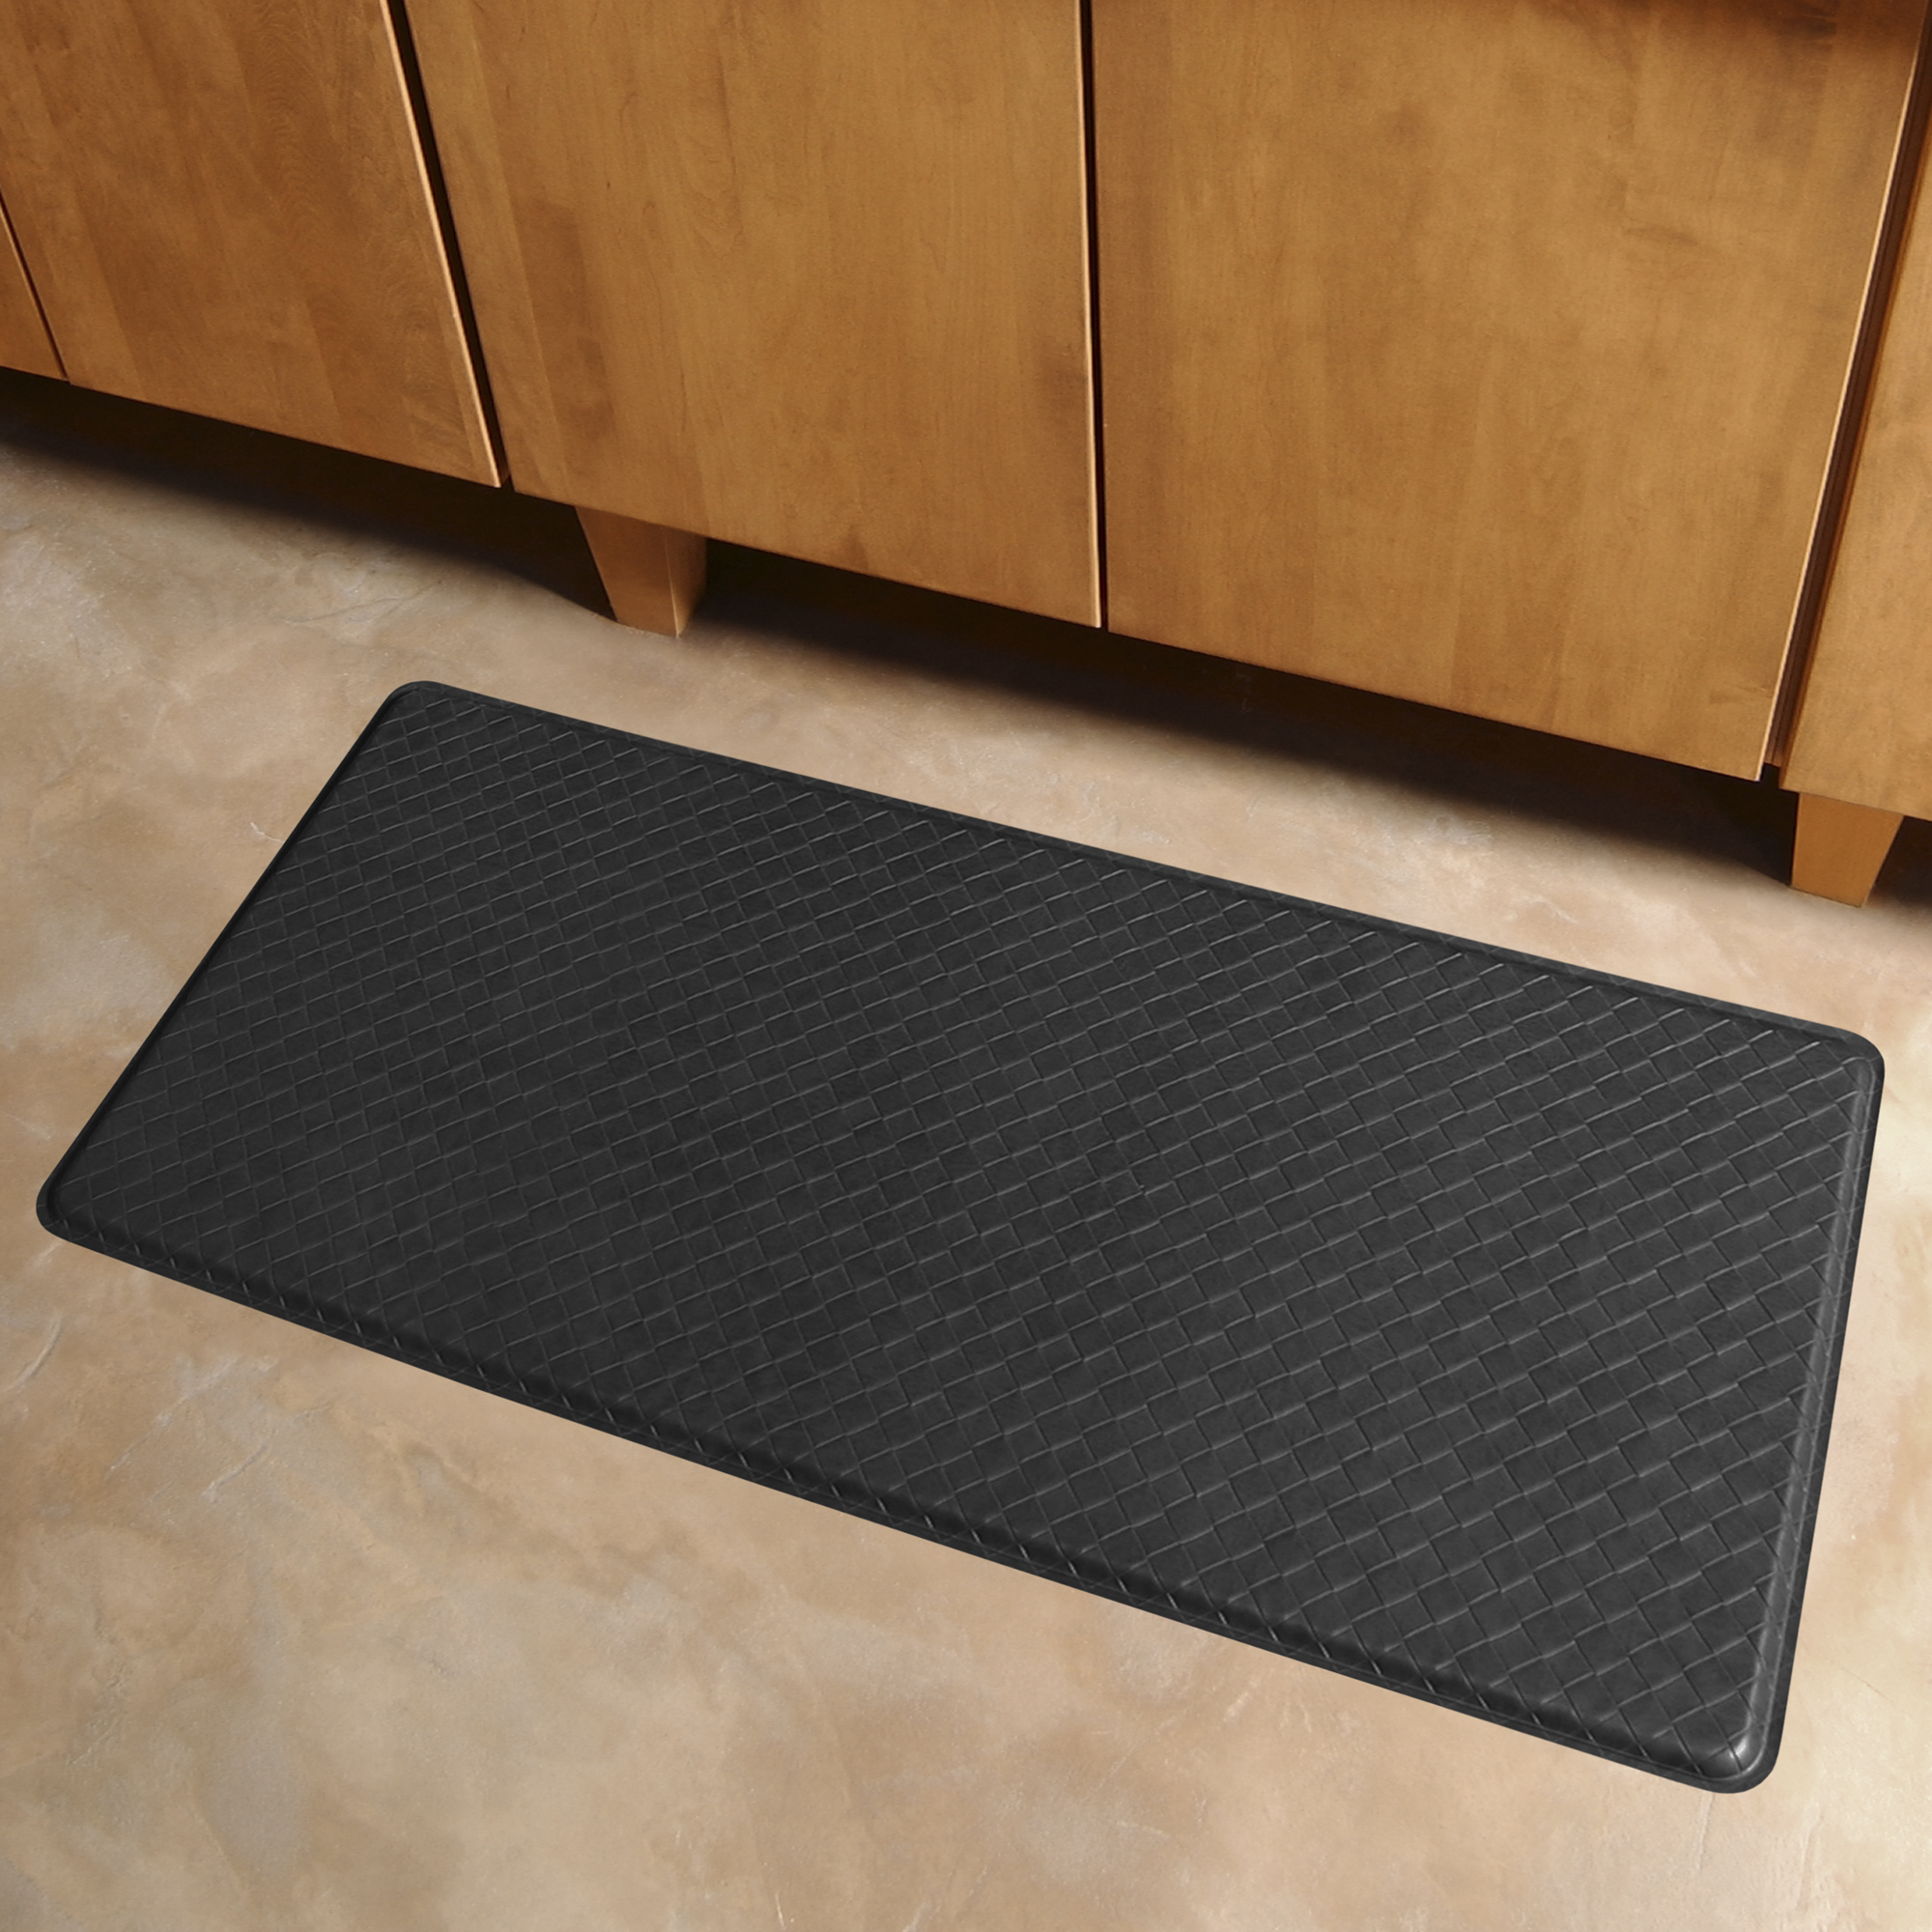 kitchen floor mats walmart gelpro classic anti fatigue kitchen comfort floor mat 4790